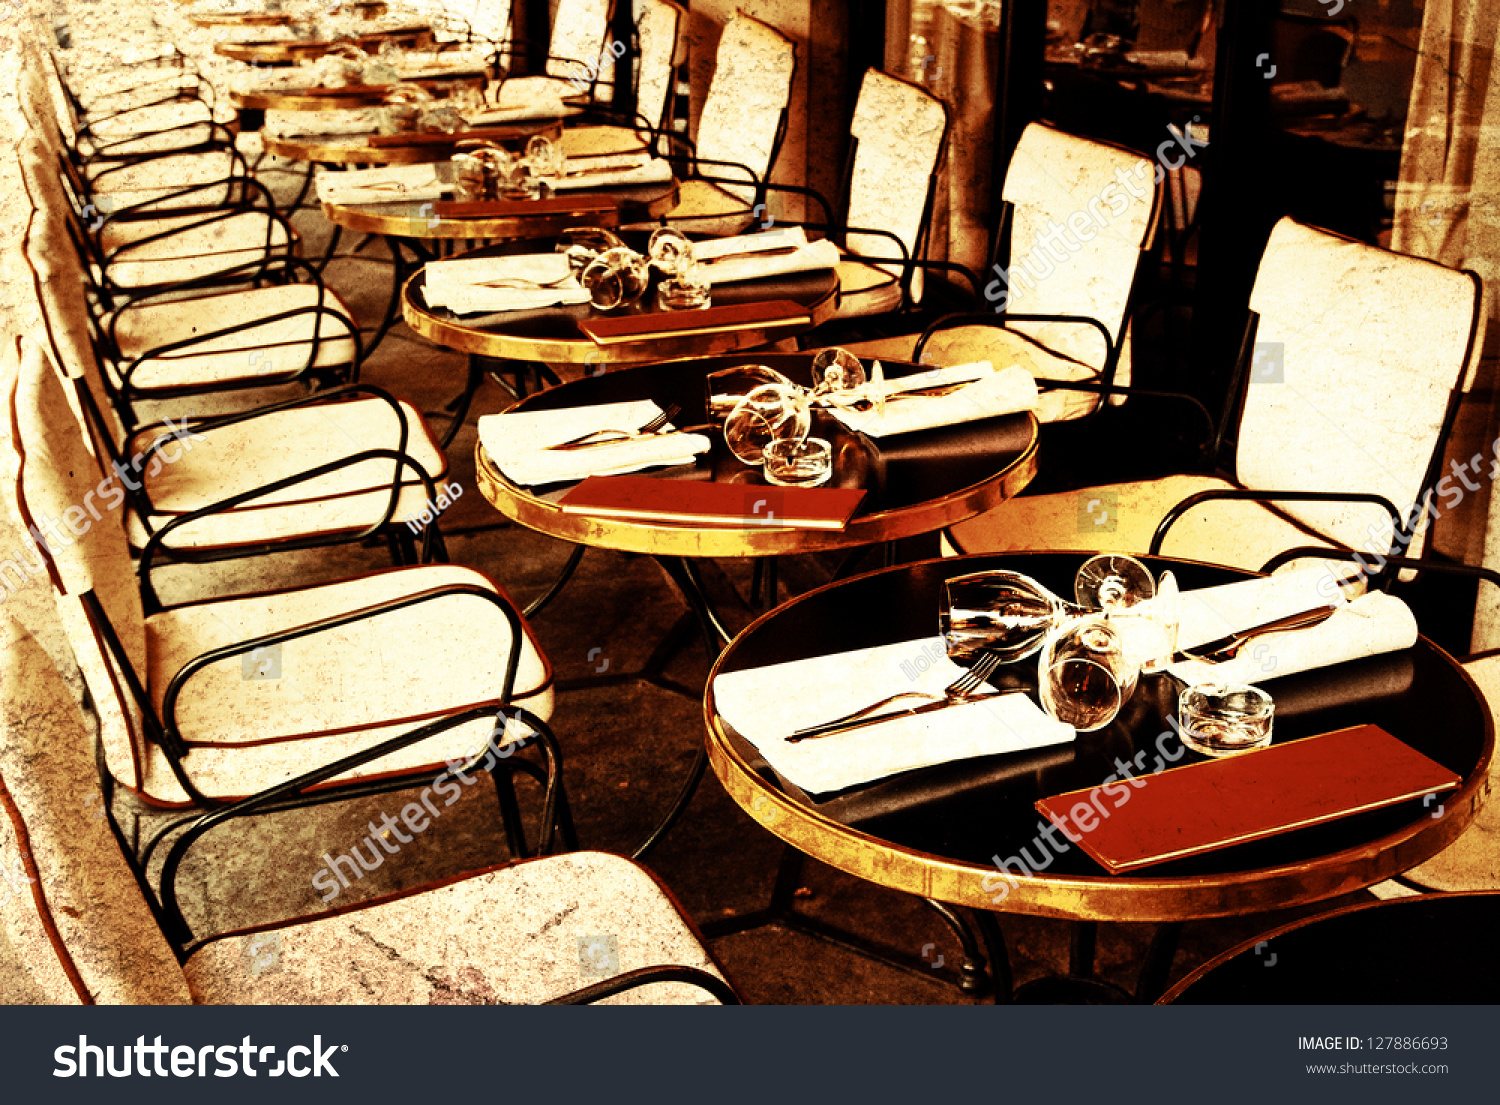 Oldfashioned Coffee Terrace Tables Chairsparis France Stock Photo 127886693 Shutterstock